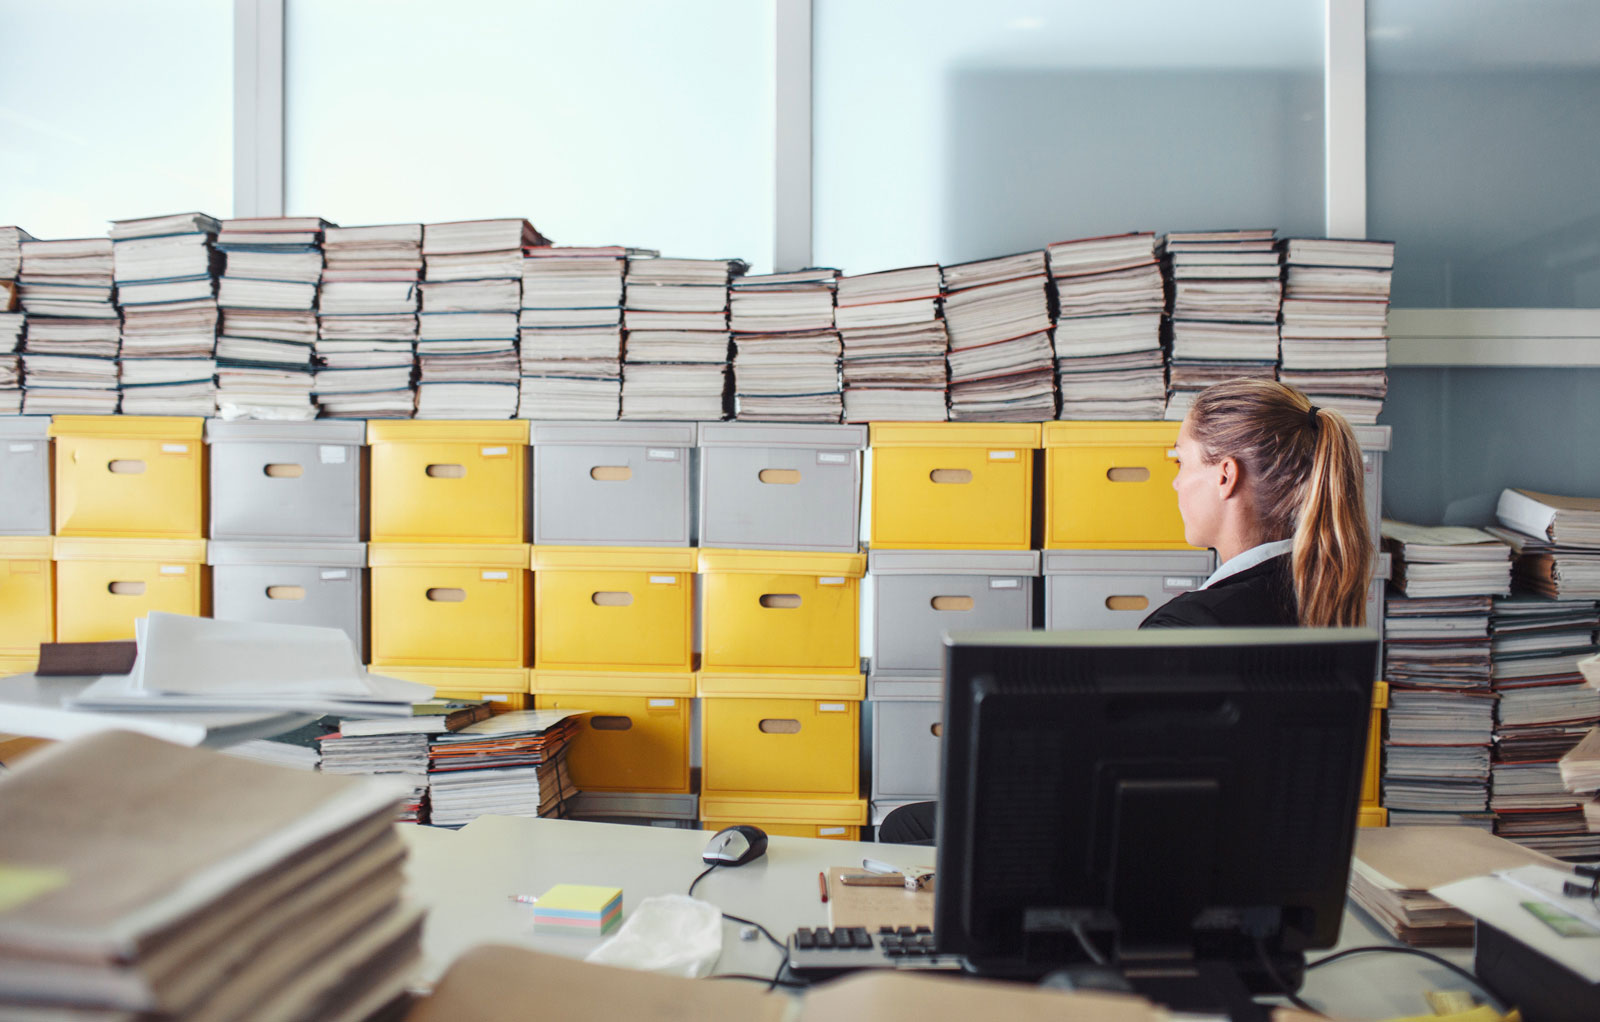 file-boxes-manual-processes-iStock-872124716